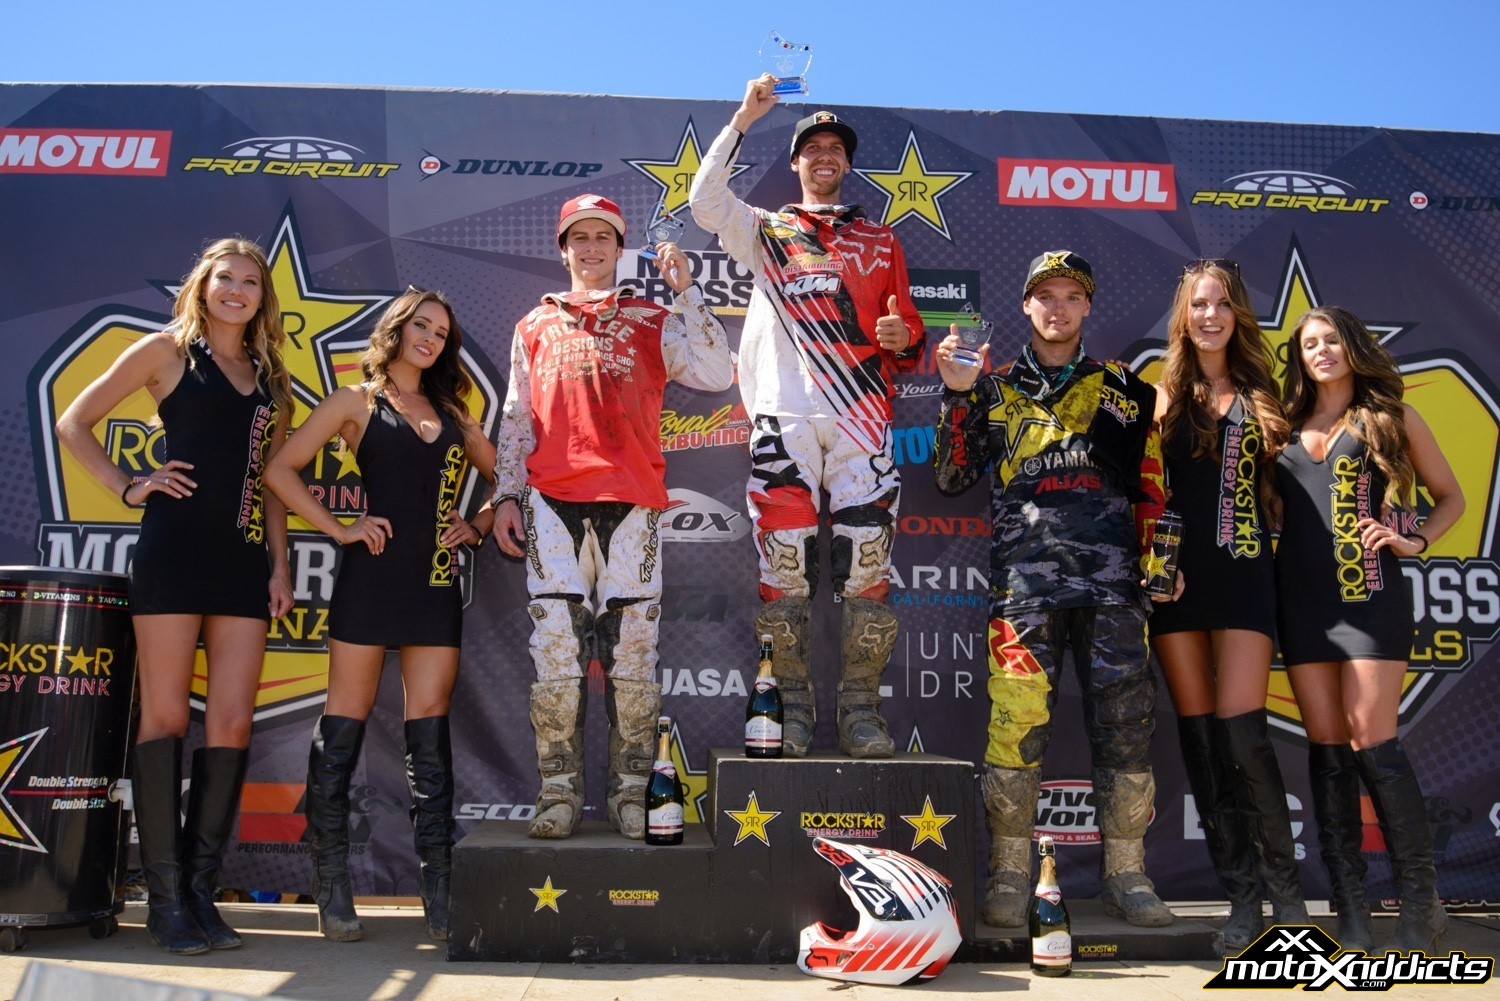 Defending MX2 Champion Kaven Benoit took over the MX2 Championship points from Jimmy Decotis with his 1-1 sweep at round 2.